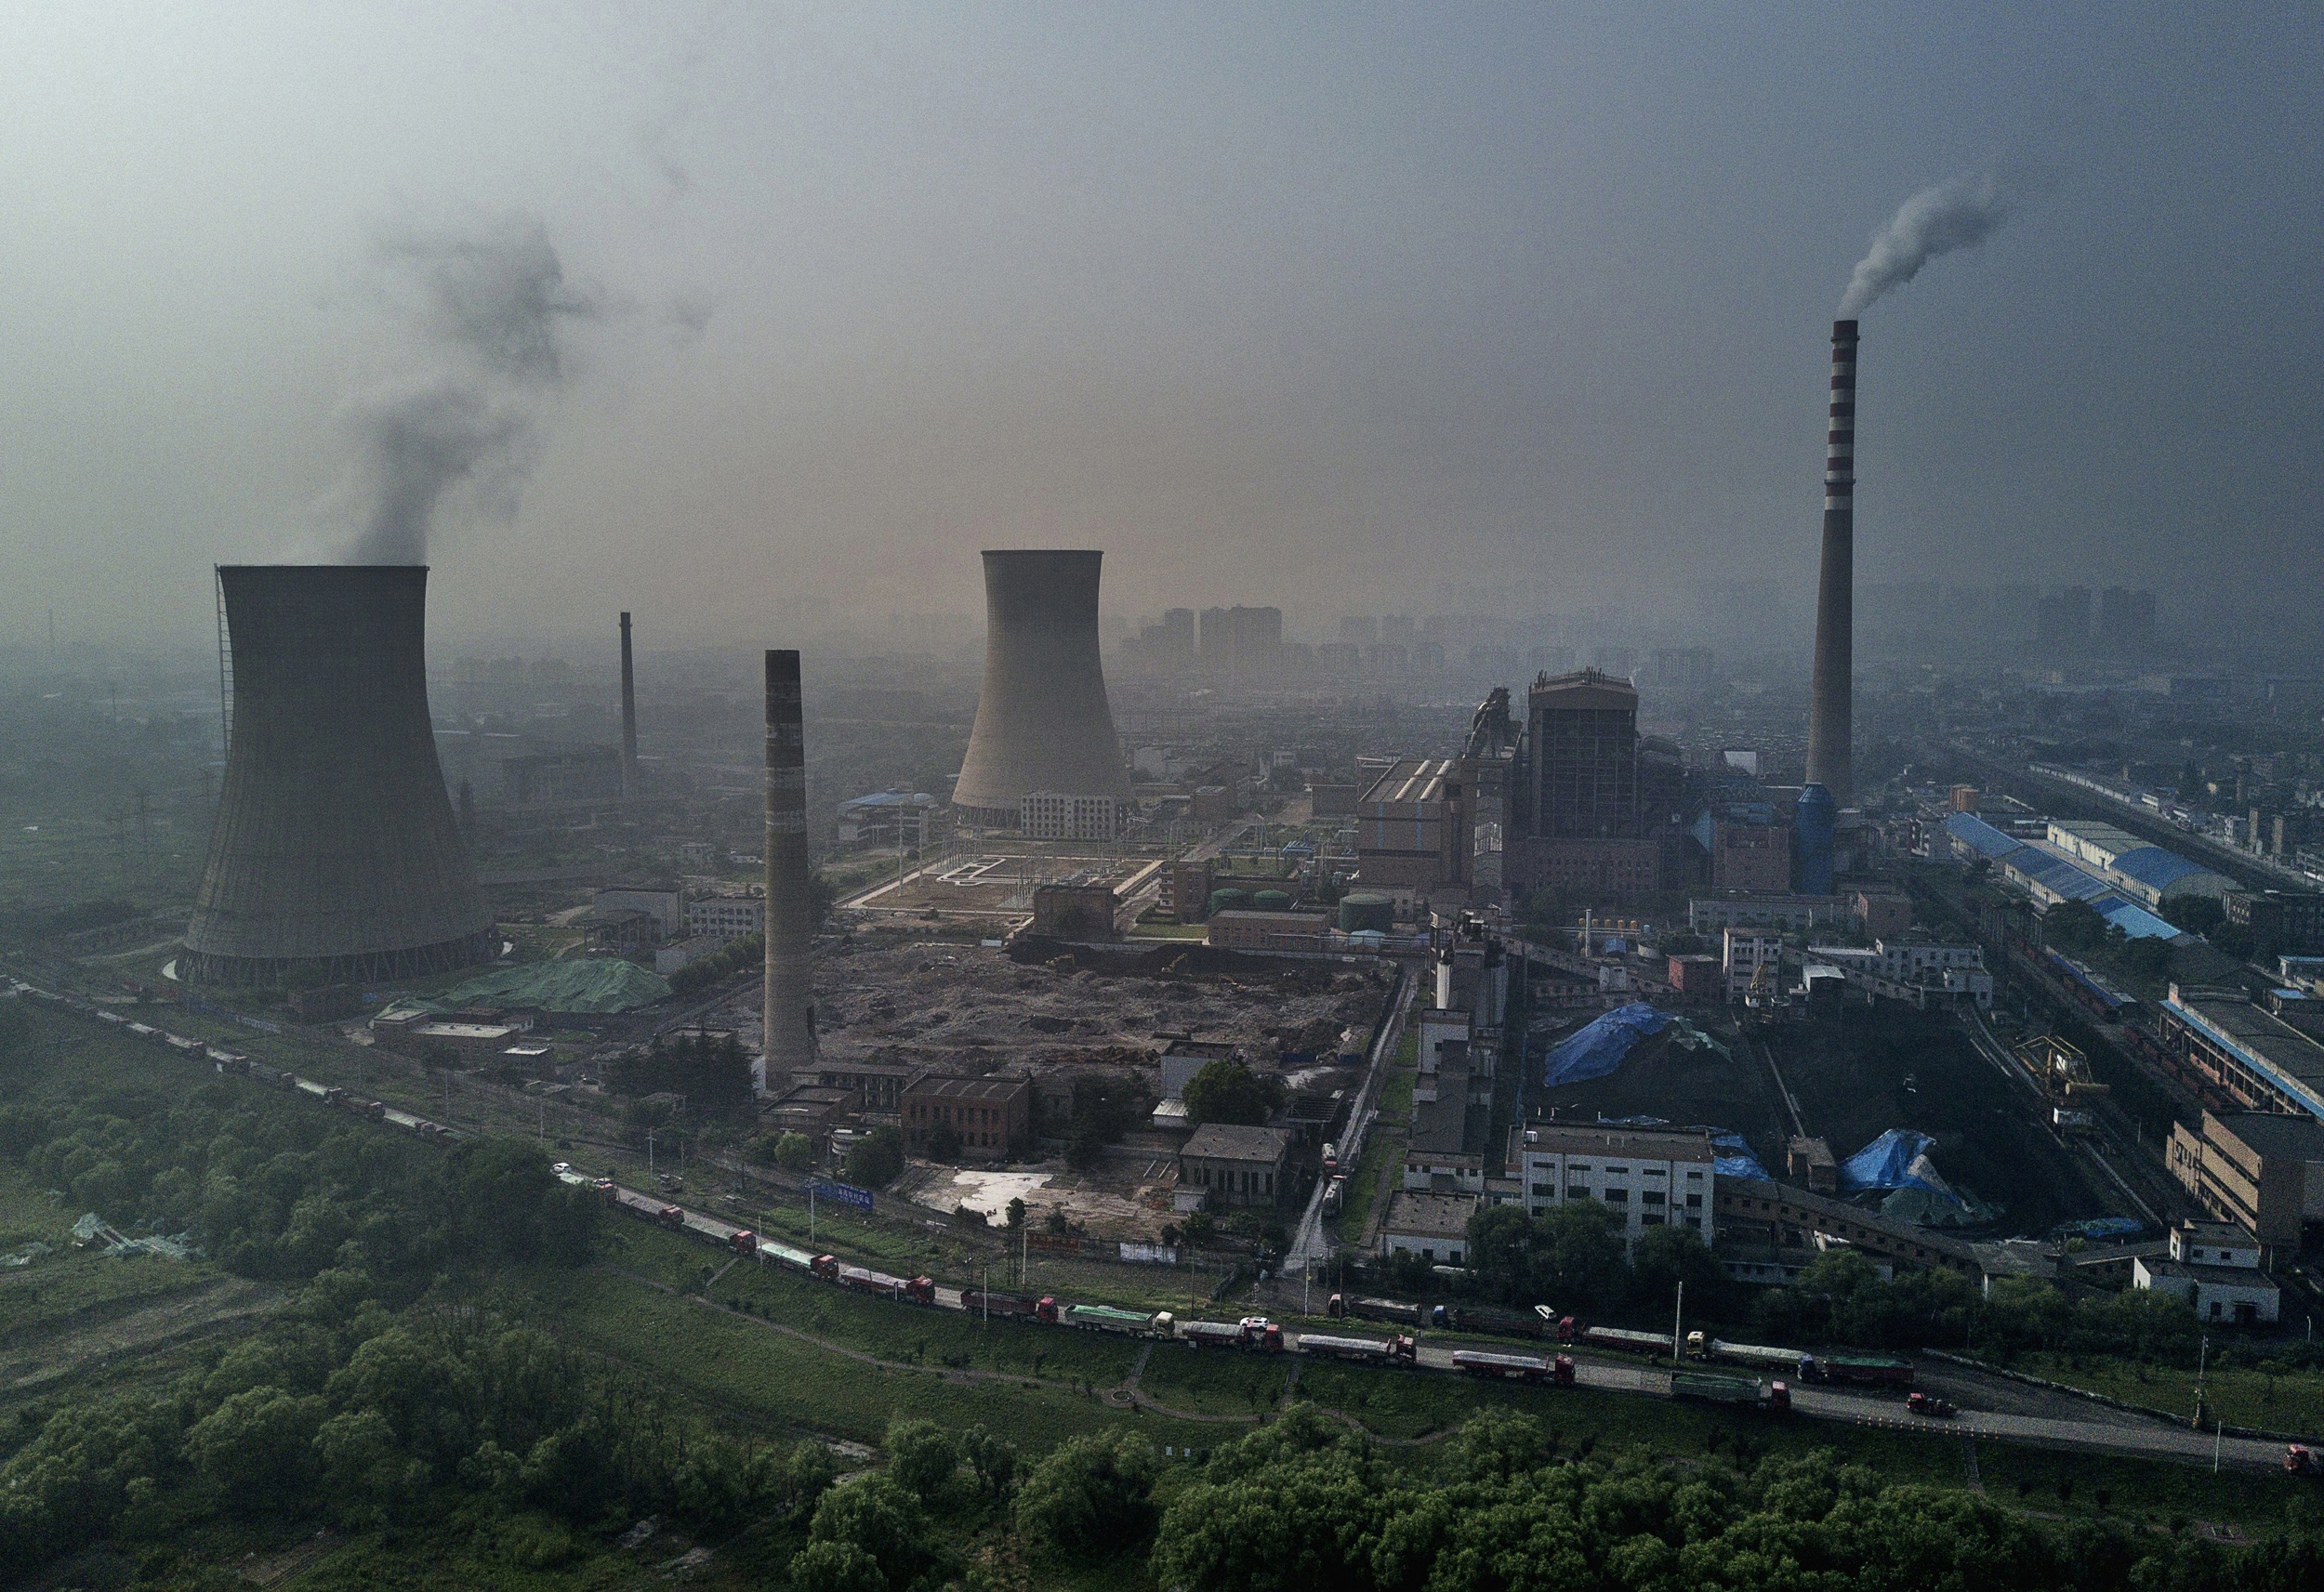 Image: A Chinese state owned coal fired power plant operates in Huainan